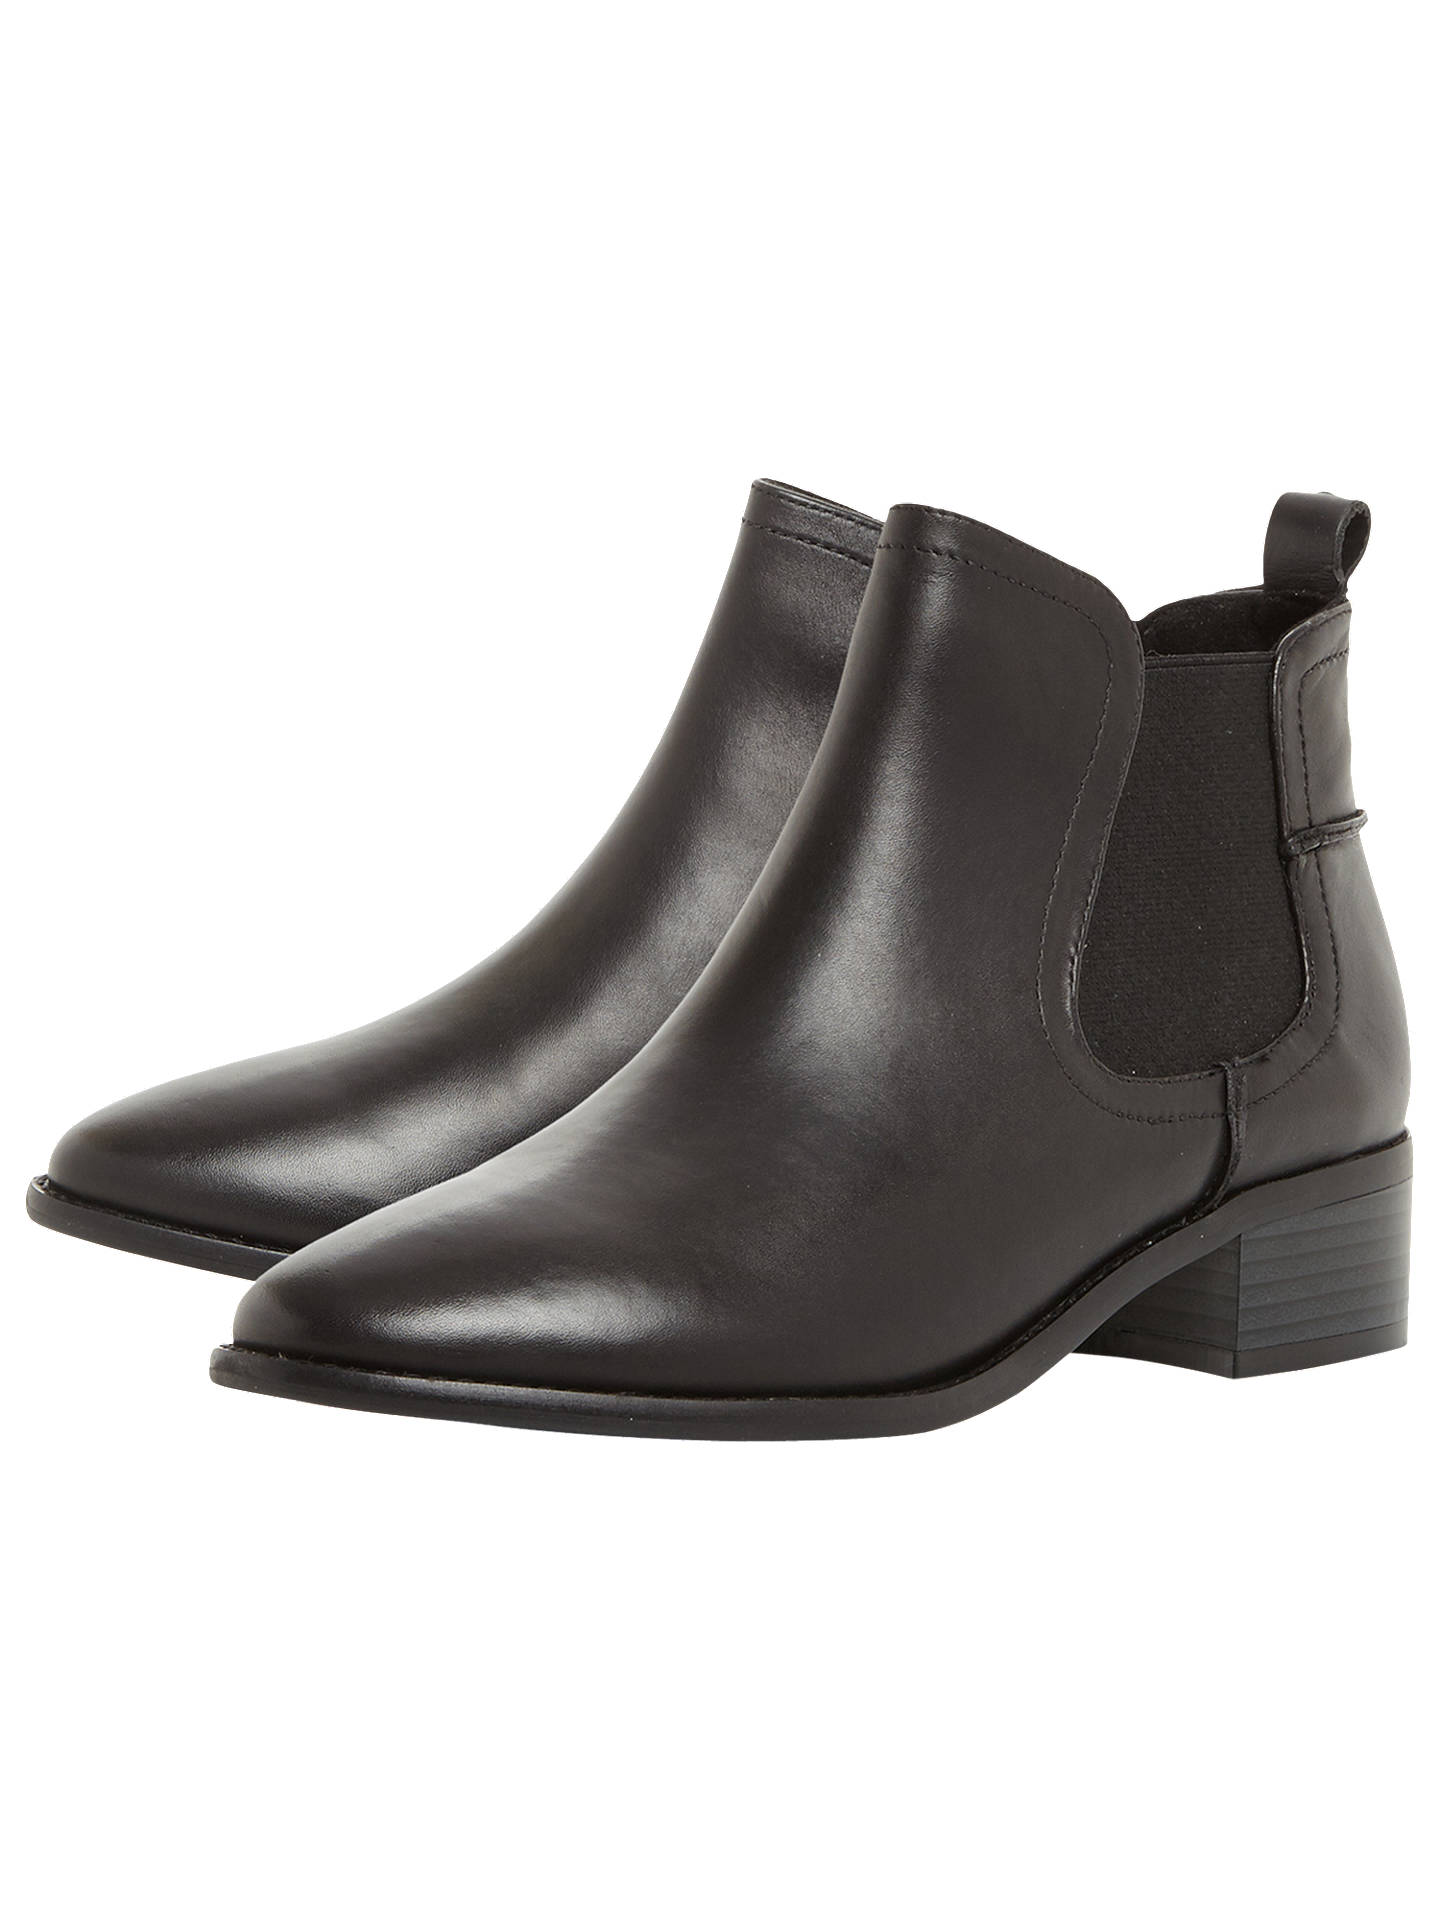 130bd05f9df Steve Madden Dicey Ankle Chelsea Boots, Black Leather at John Lewis ...